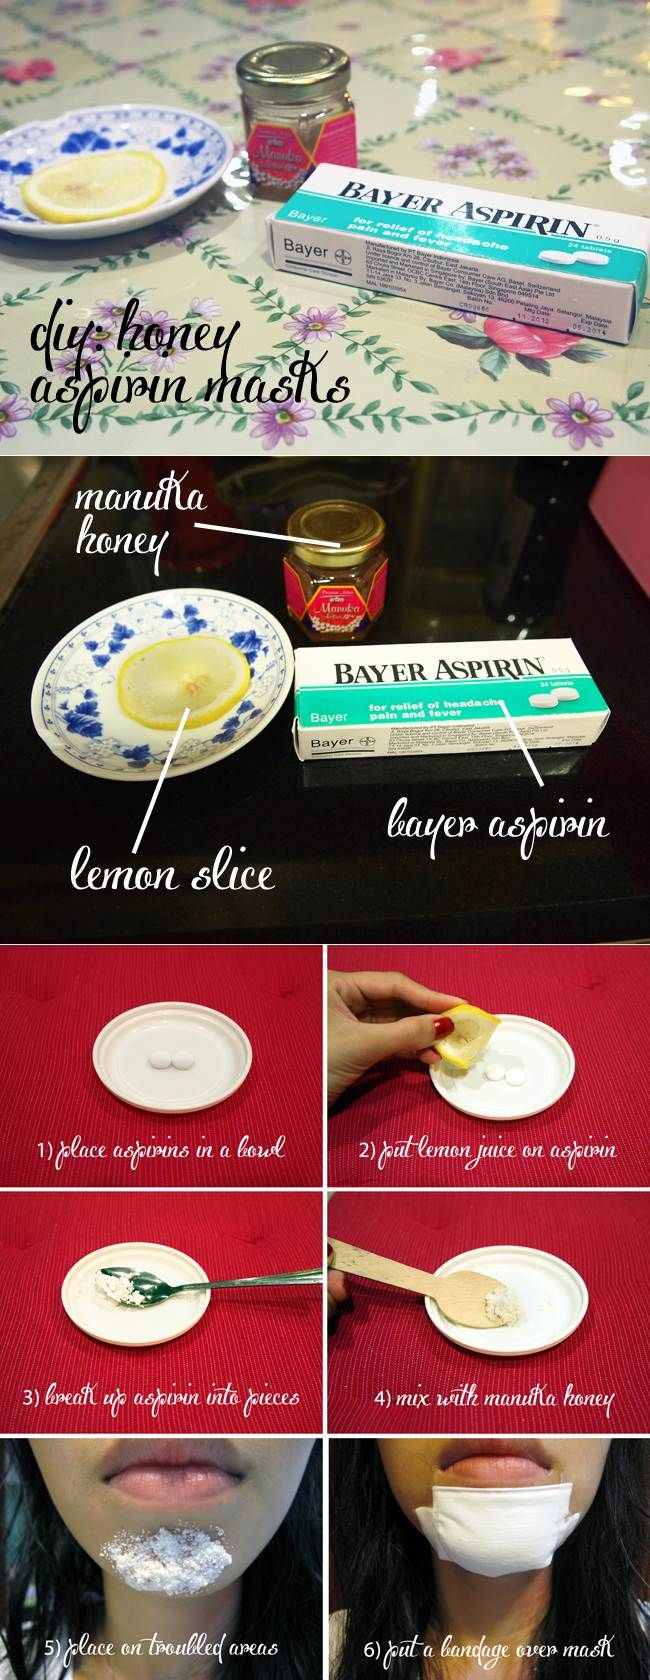 Acne mask with aspirin and honey